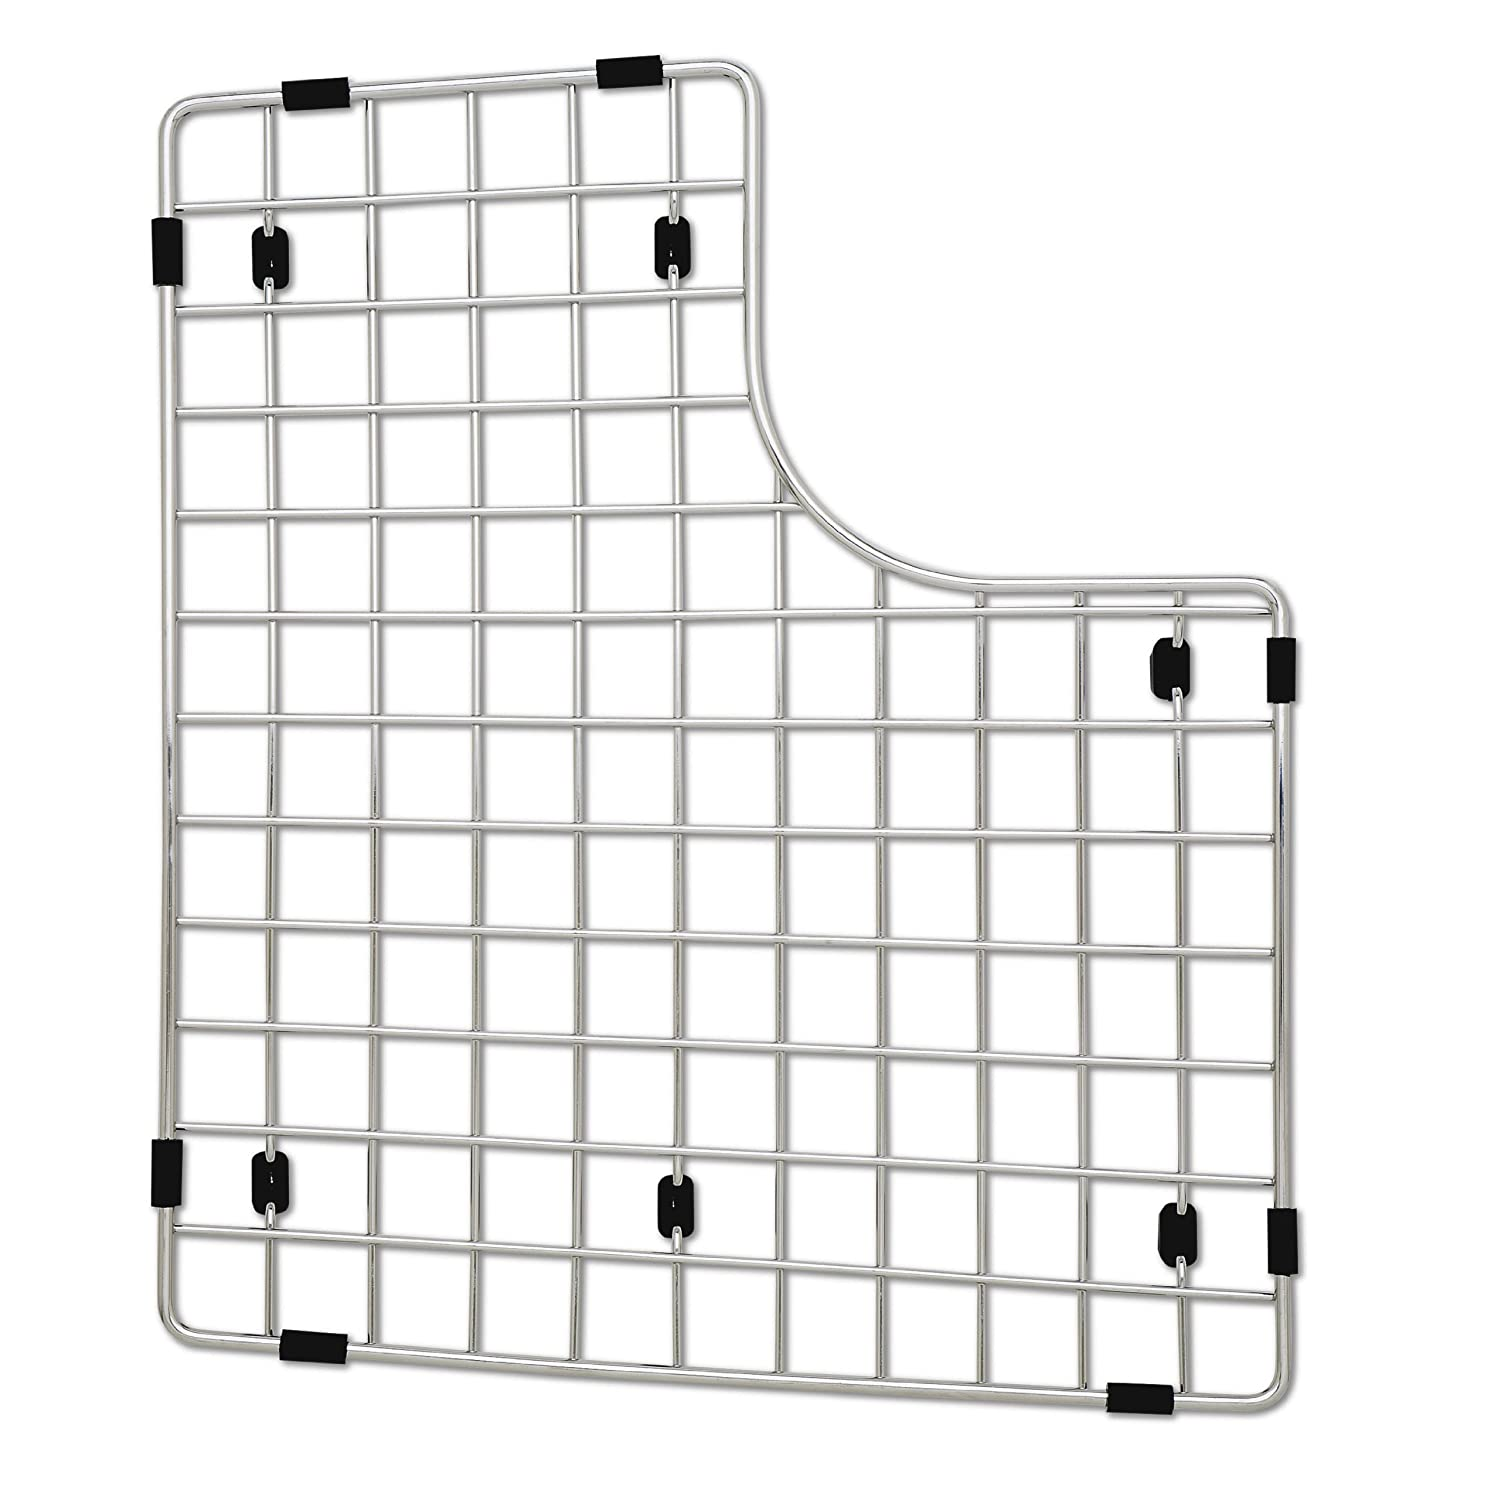 Captivating Blanco 222429 Sink Grid, Fits Performa Silgranit II Double Bowl Left Bowl, Stainless  Steel     Amazon.com